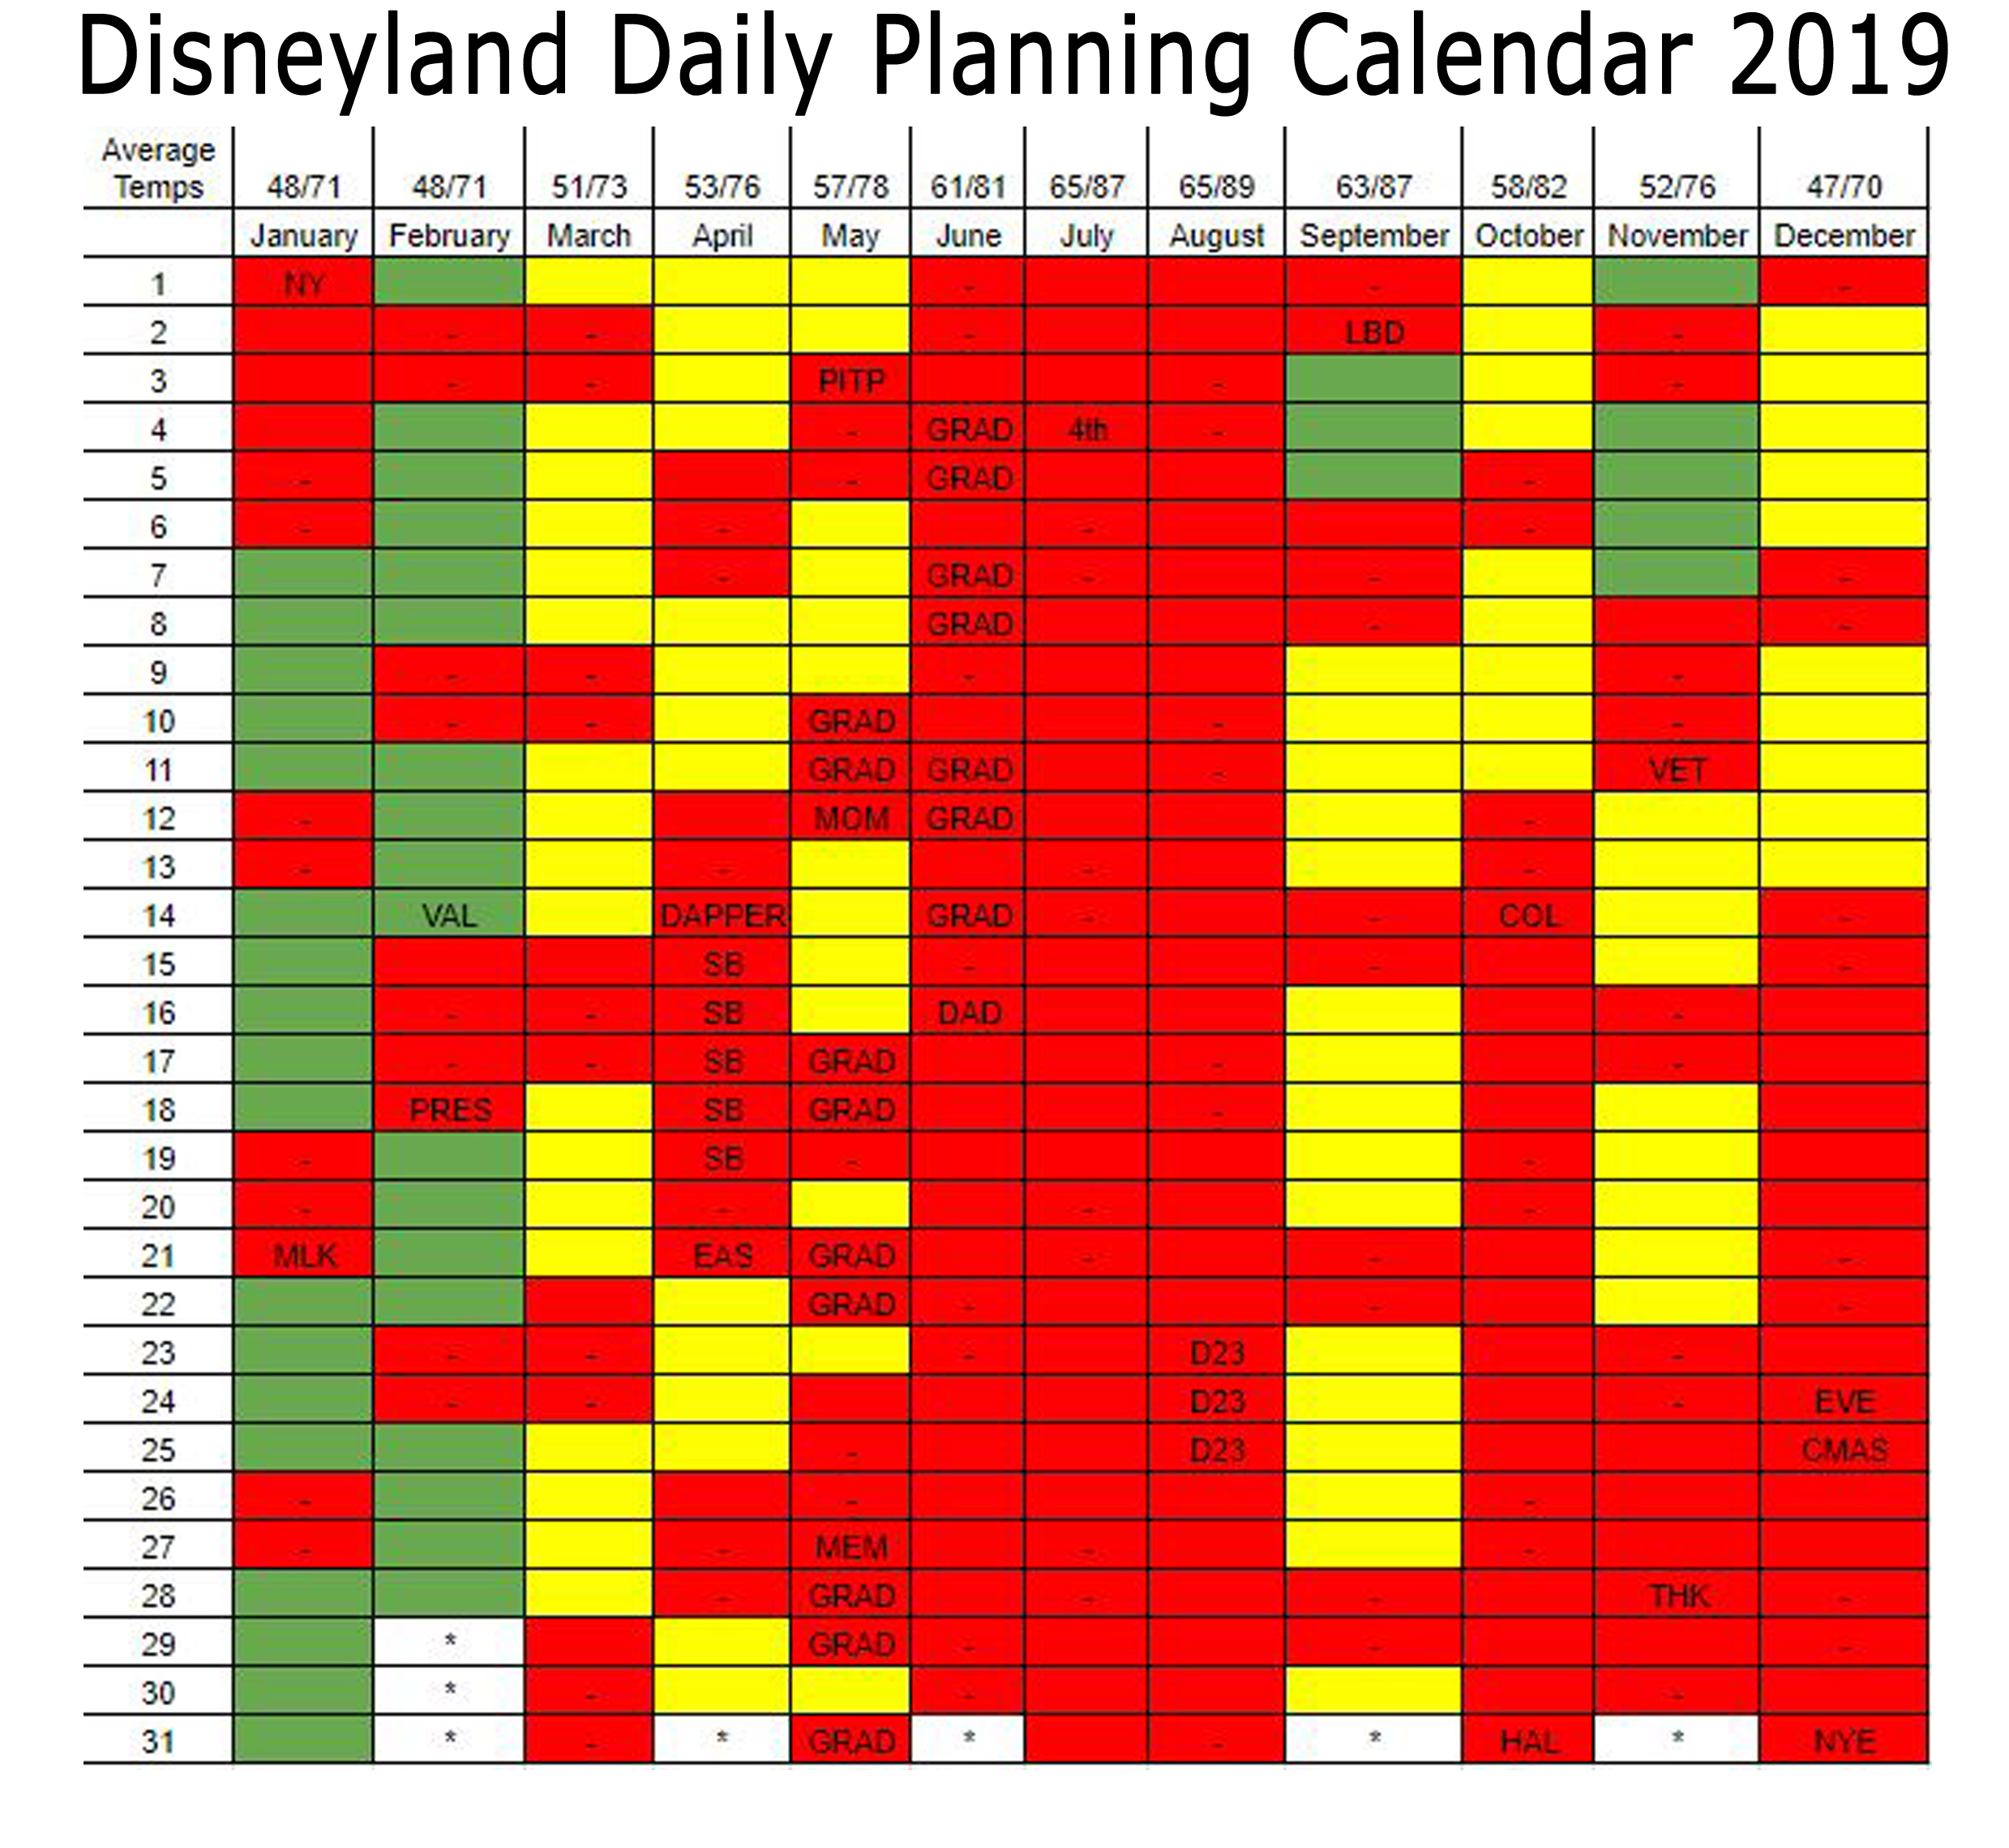 Disneyland January 2019 Crowd Calendar Step 1: Pick a Date | Disneyland Daily